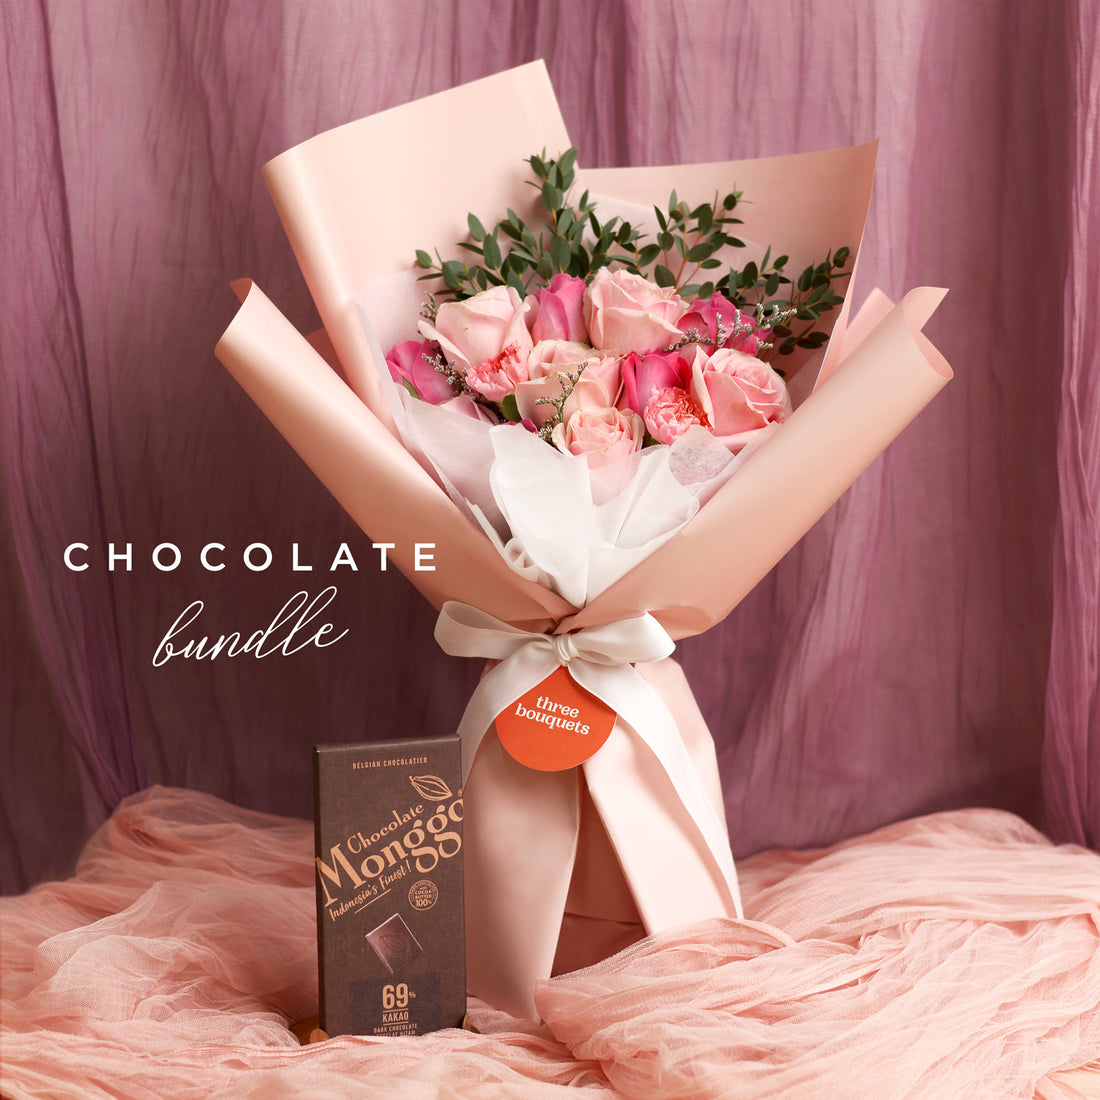 Limited Chocolate Bundle